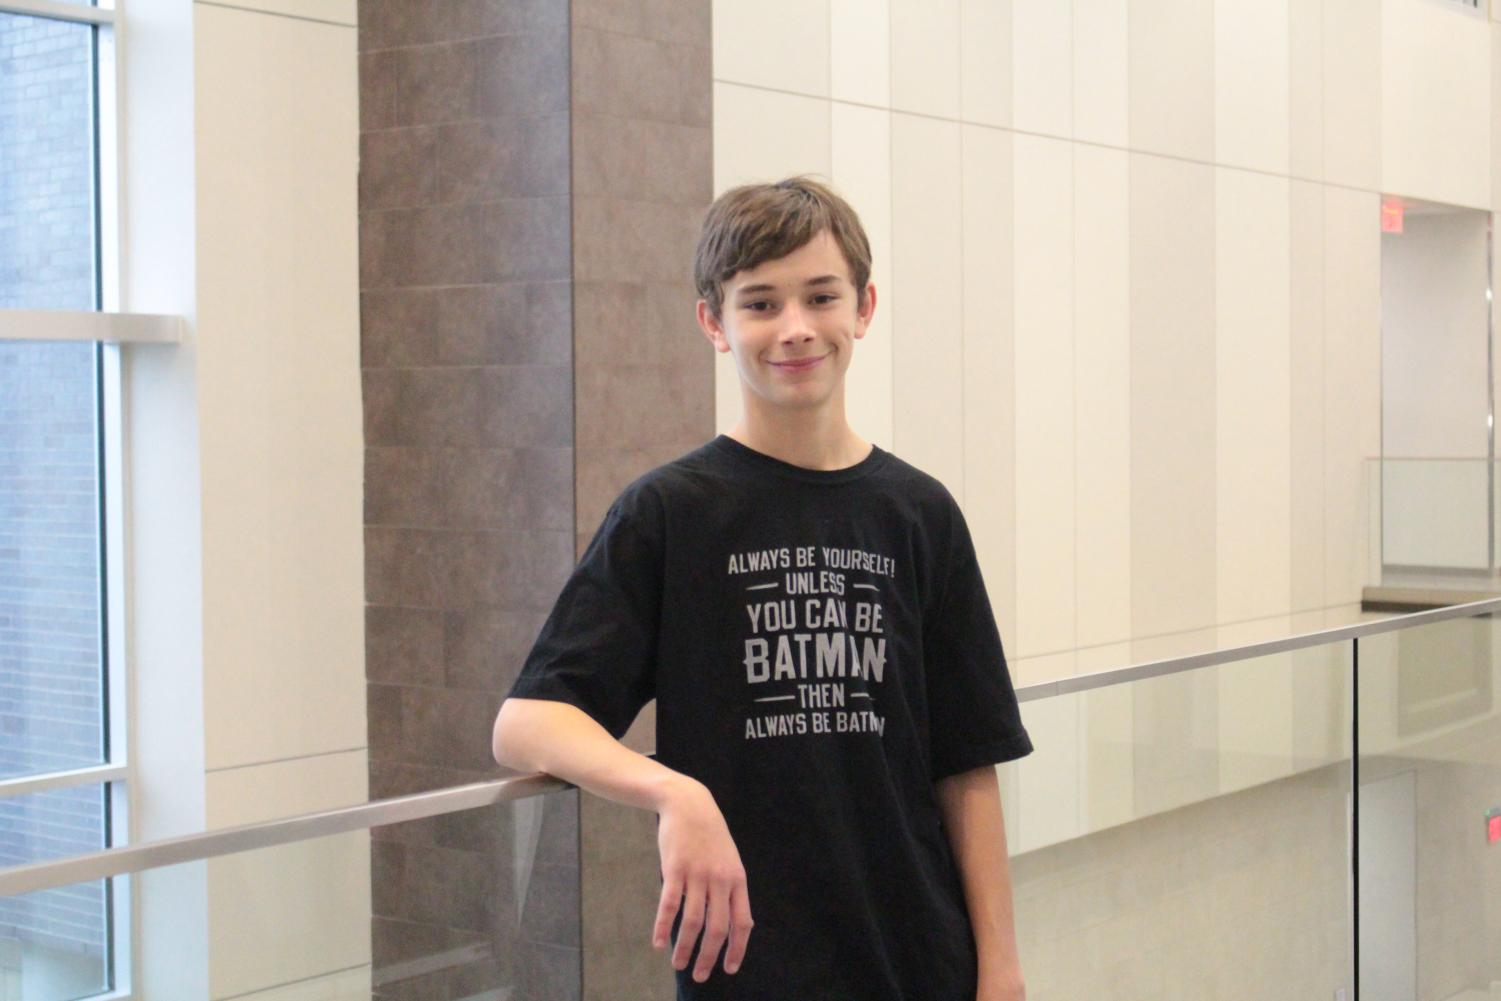 Freshman Kellen Broecklman overcomes being a victim of bullying throughout Middle School.